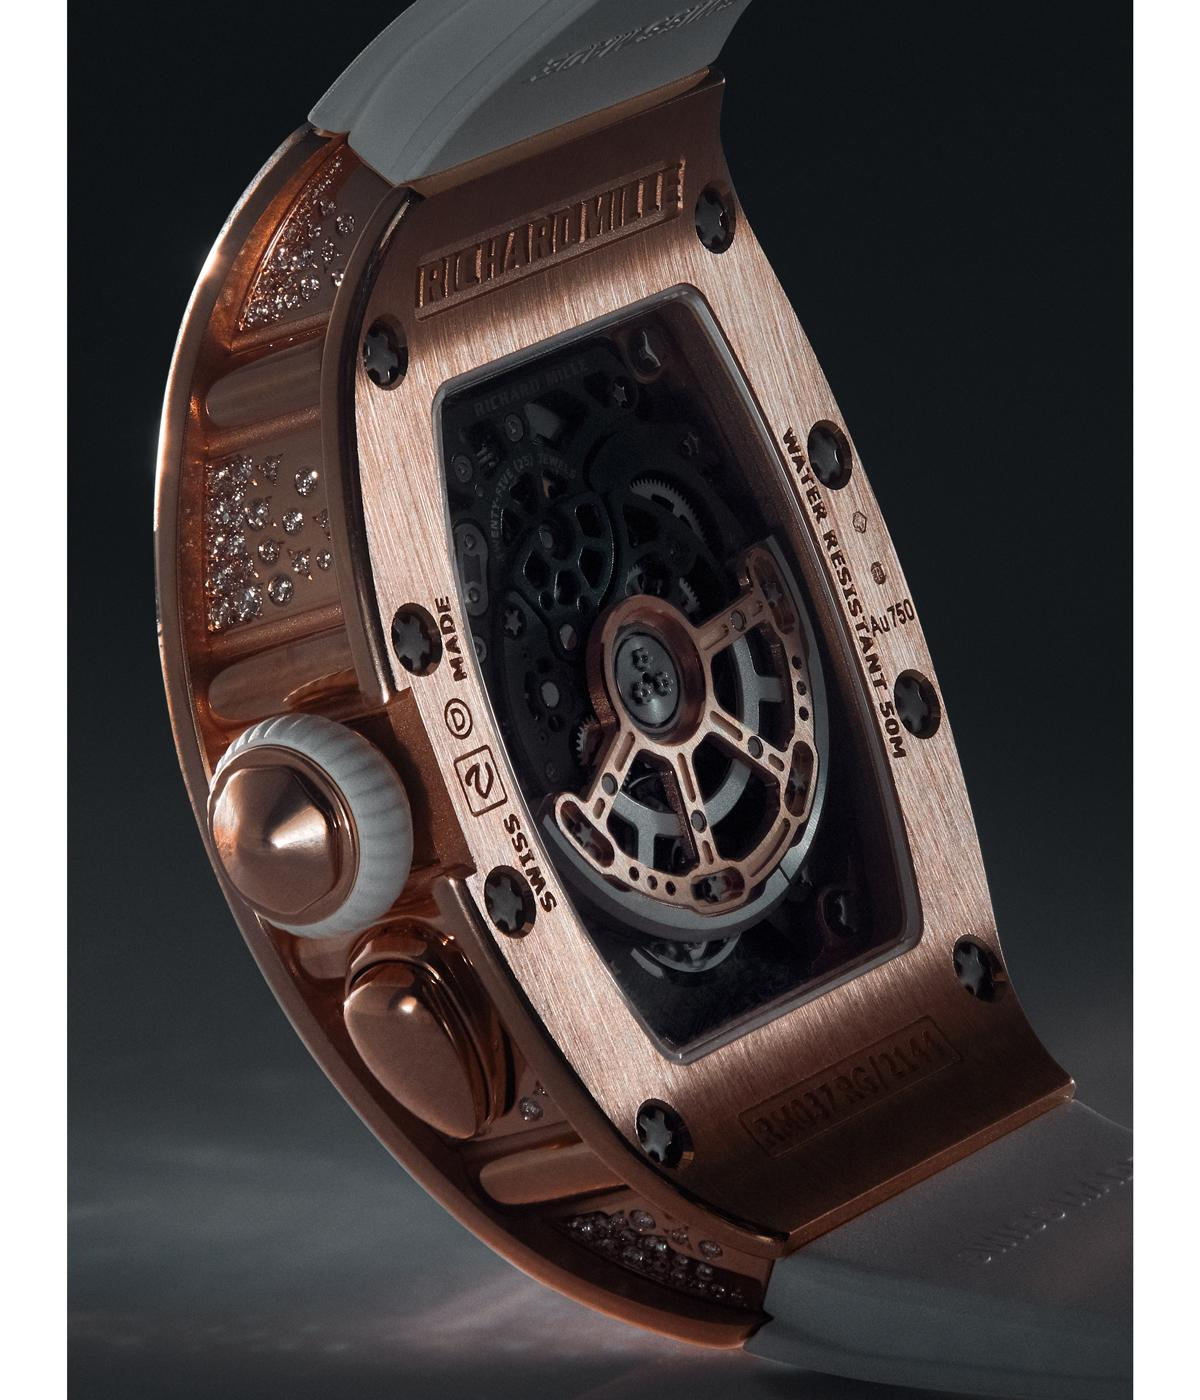 red gold back of a richard mille watcho